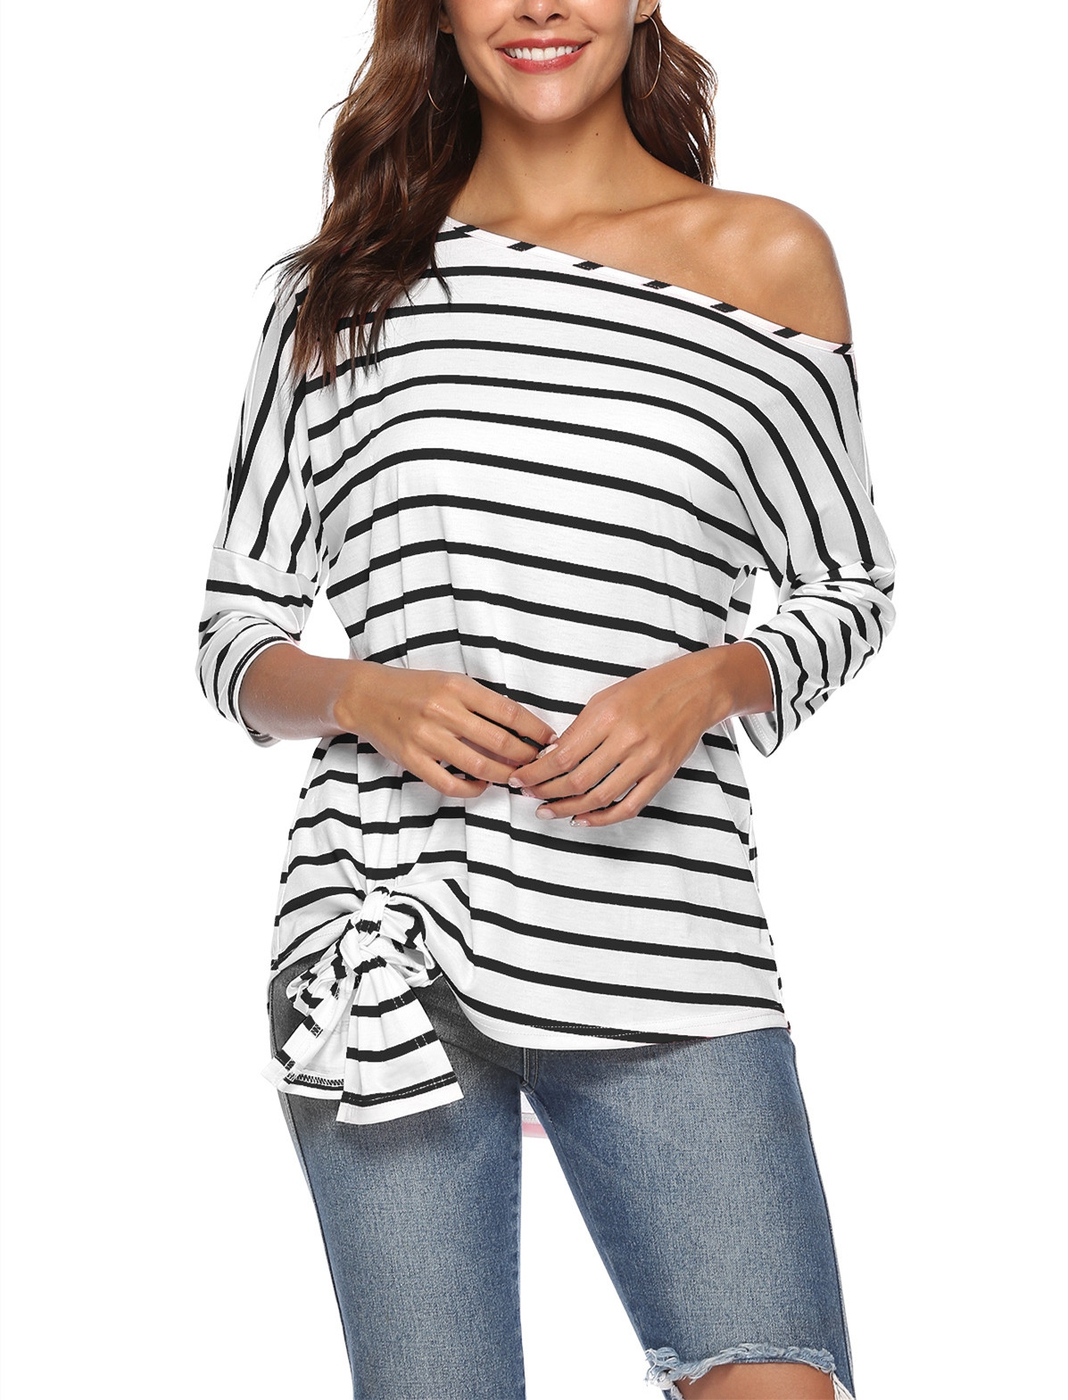 Boat Neck Striped Long Sleeve Top - orangeshine.com